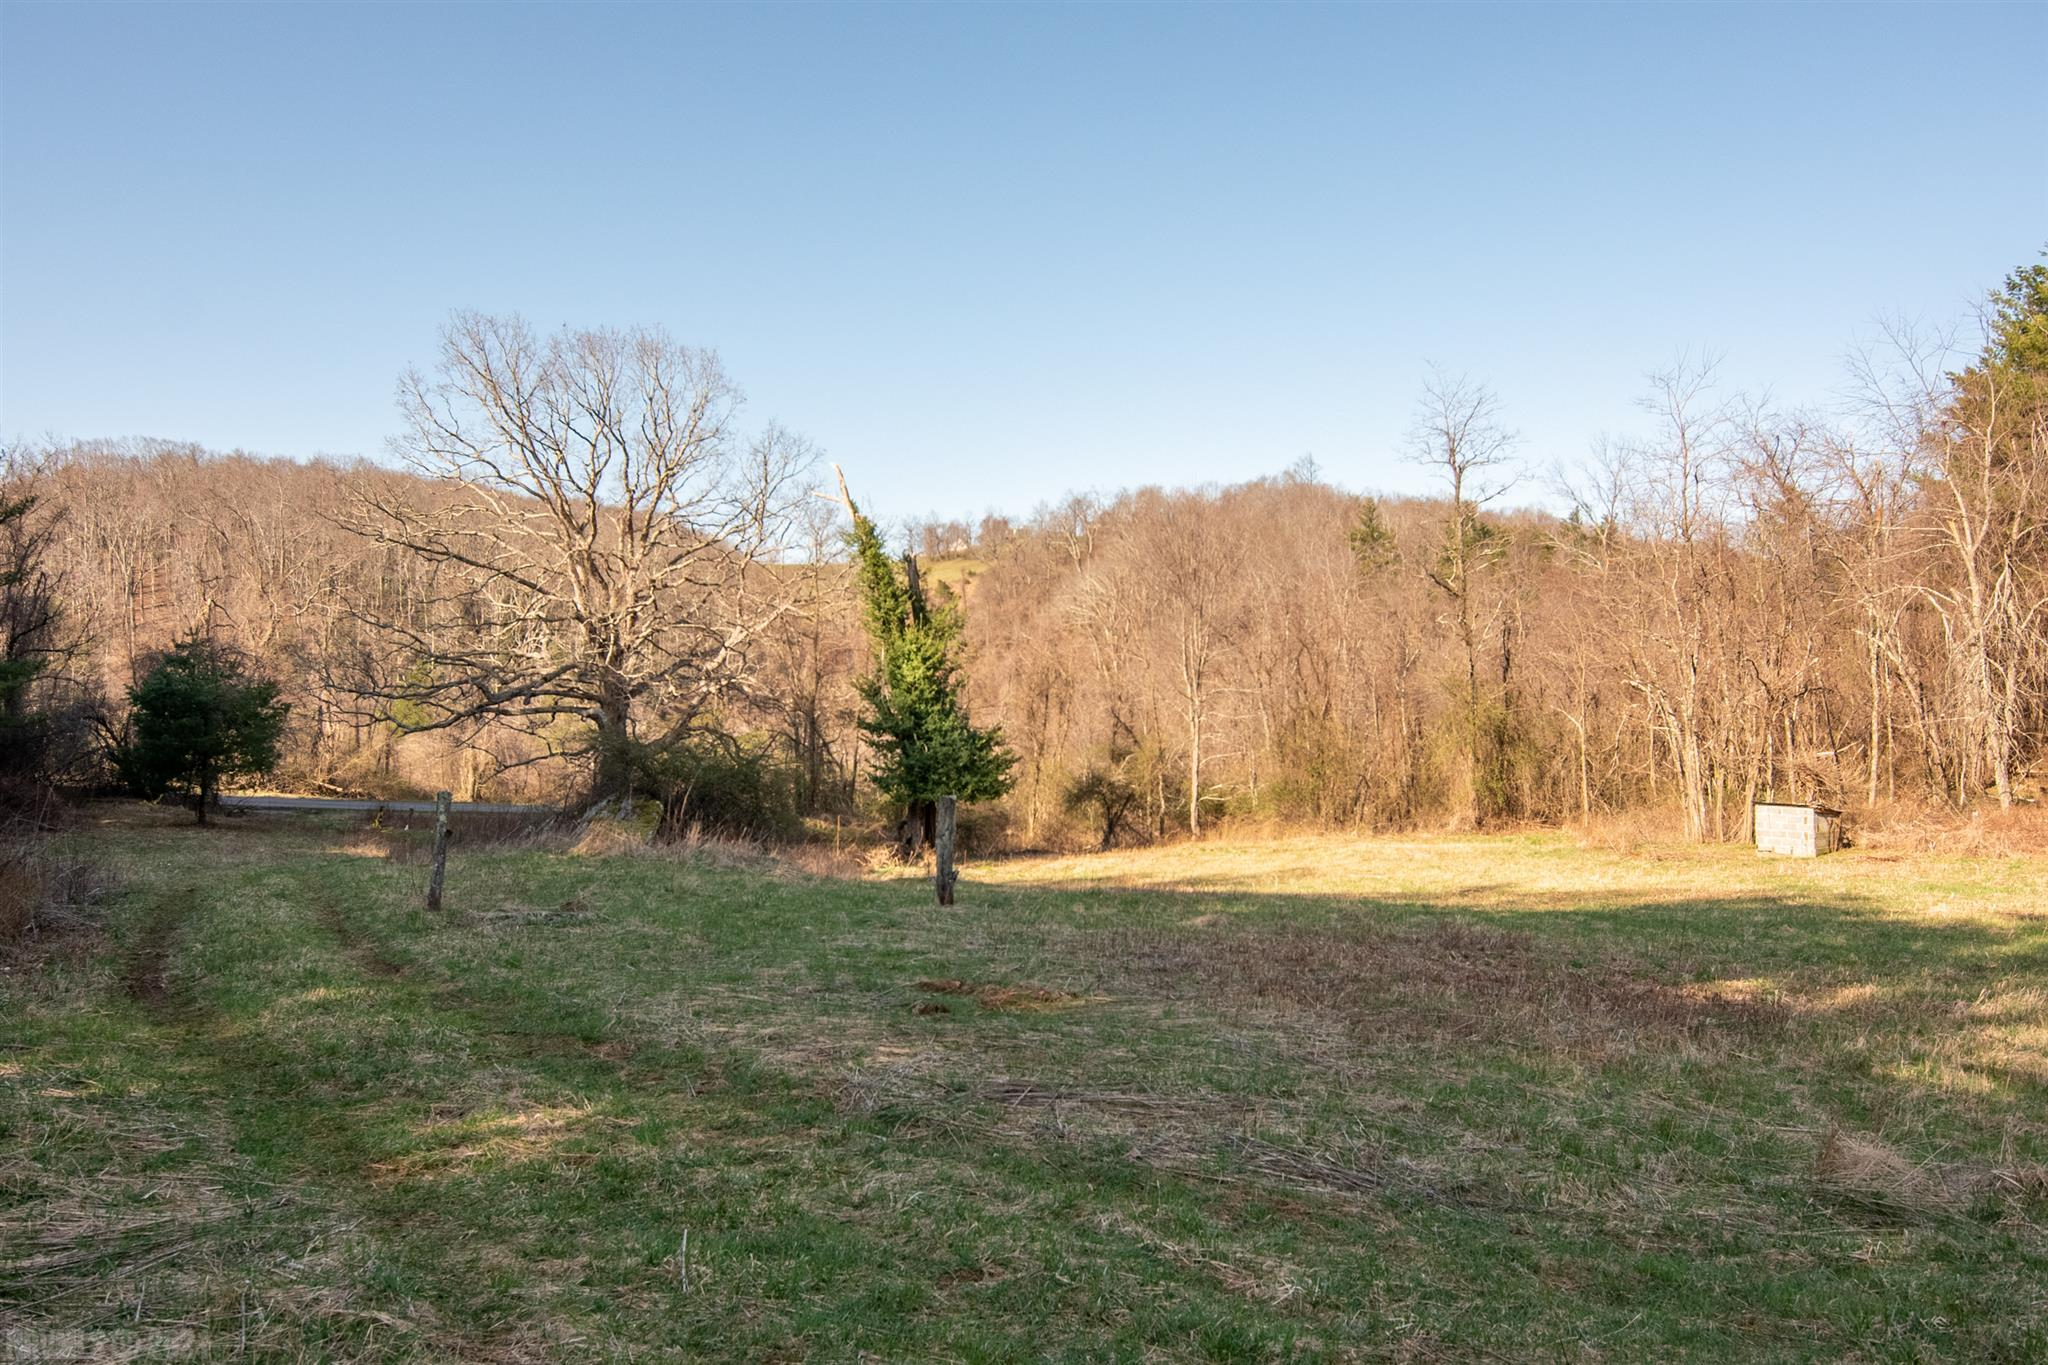 Beautiful 23 acre property with a mix of hardwoods, pines and open land. Property has 1800 +\- feet joining The Blue Ridge Parkway. Cleared house sight with a nearby spring on the property. The top of the ridge has potential for short range views. Great opportunity to own  land in Floyd county with seclusion and convenient to town of Floyd and Roanoke.